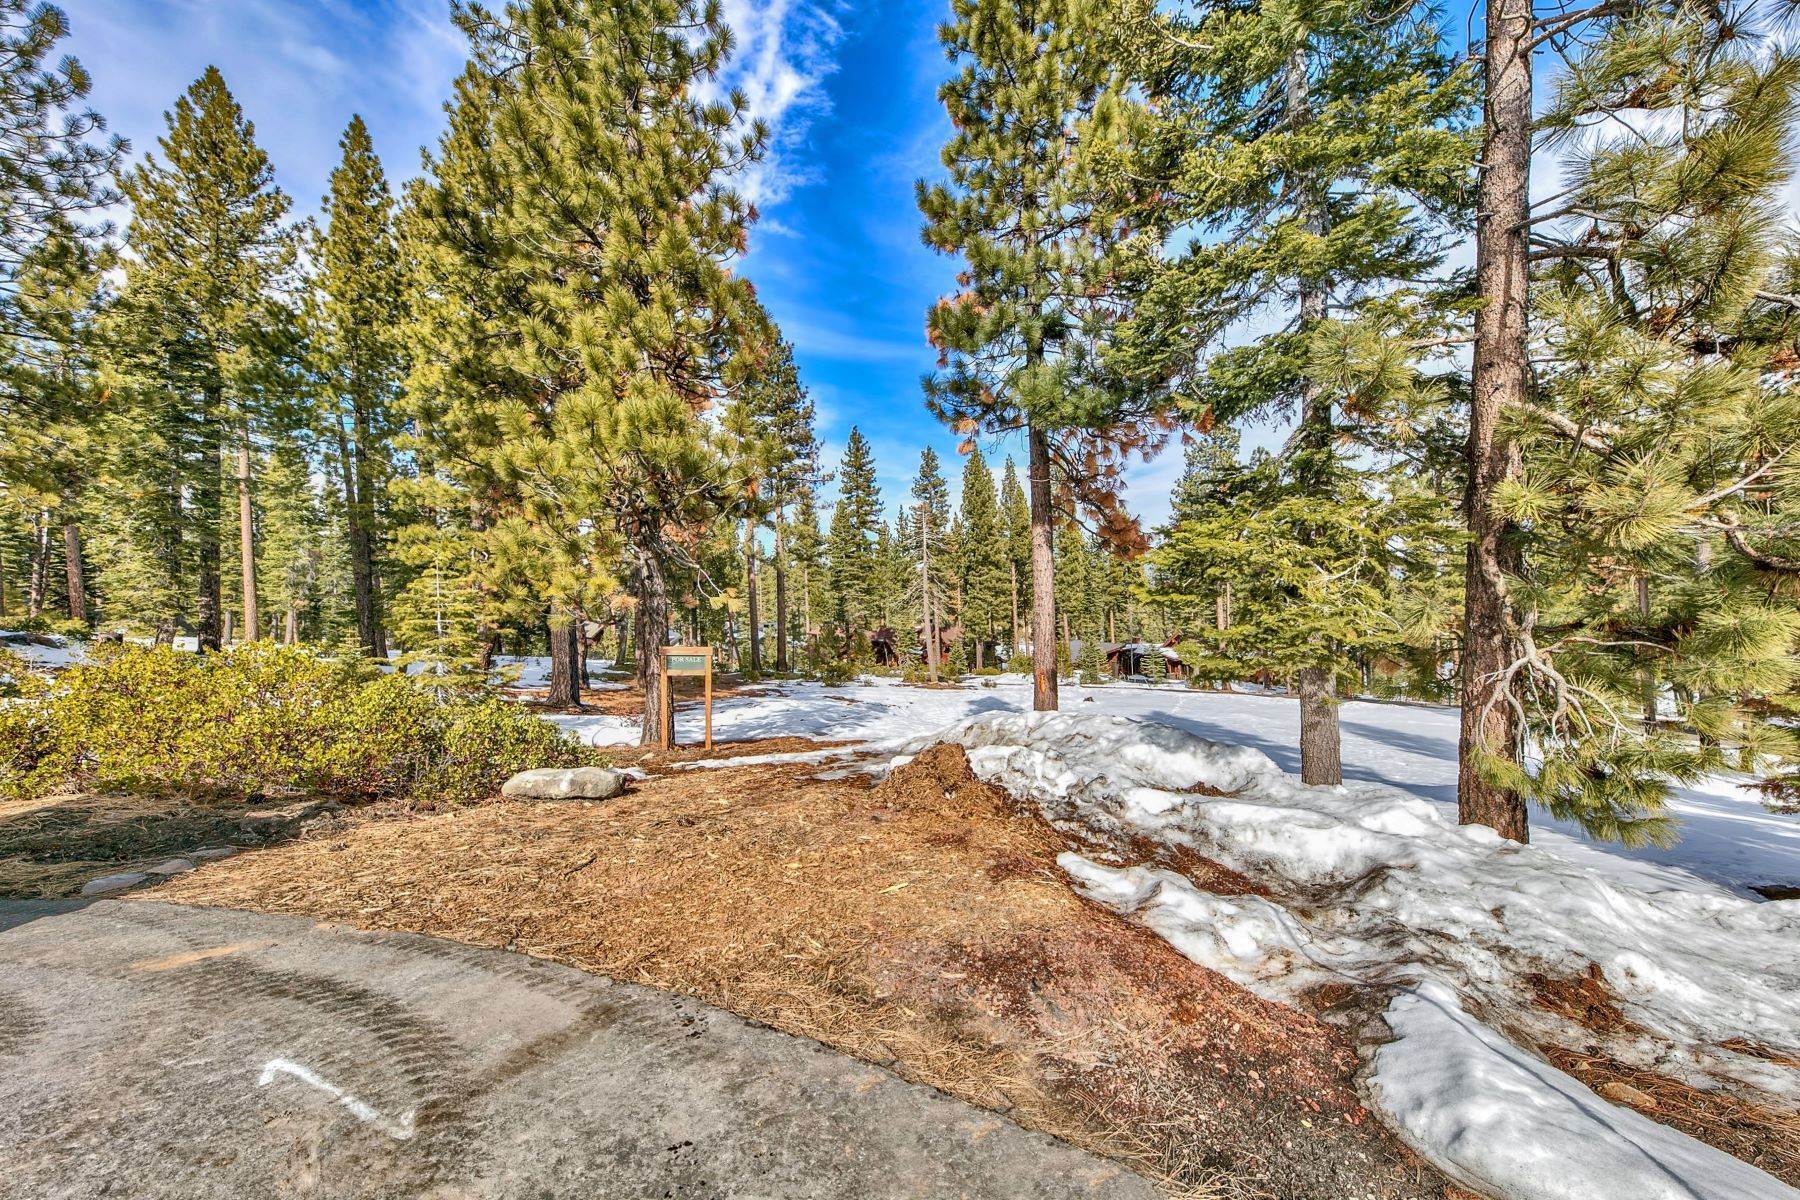 Terreno por un Venta en Beautiful Golf Course Setting 8641 Lloyd Tevis Dr Truckee, California 96161 Estados Unidos